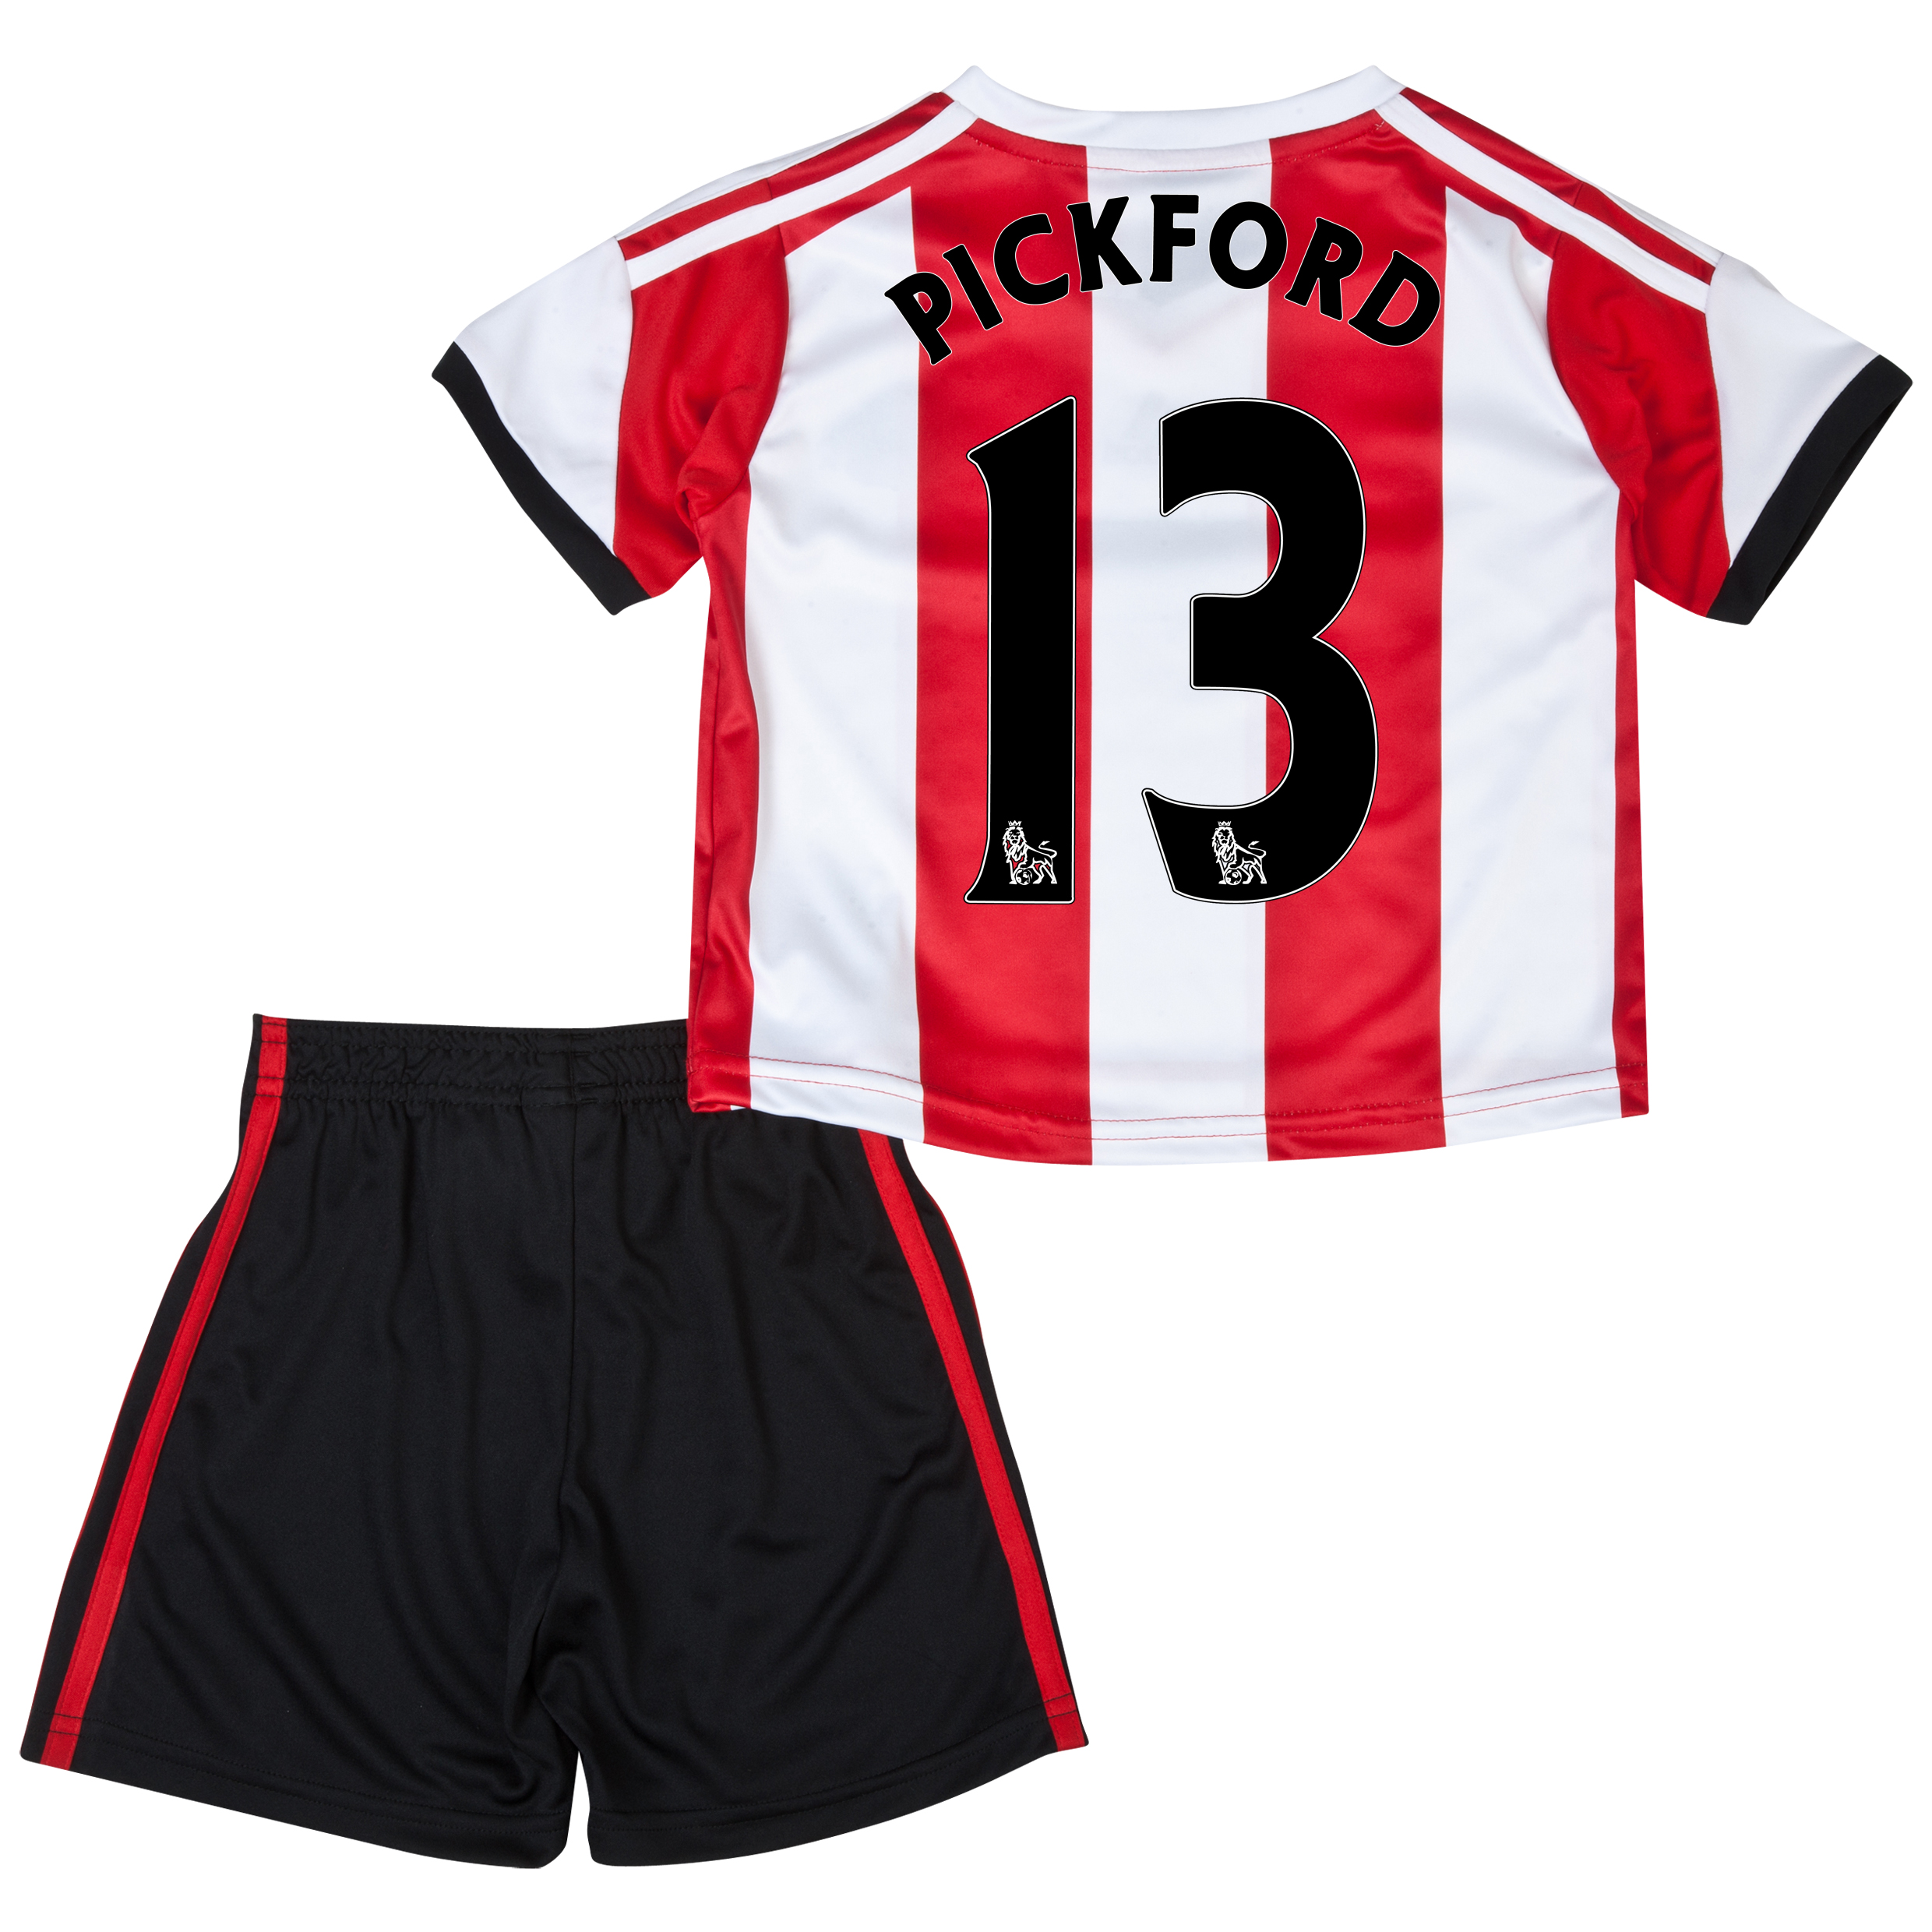 Sunderland Home Minikit 2013/14 - Infants with Pickford 13 printing